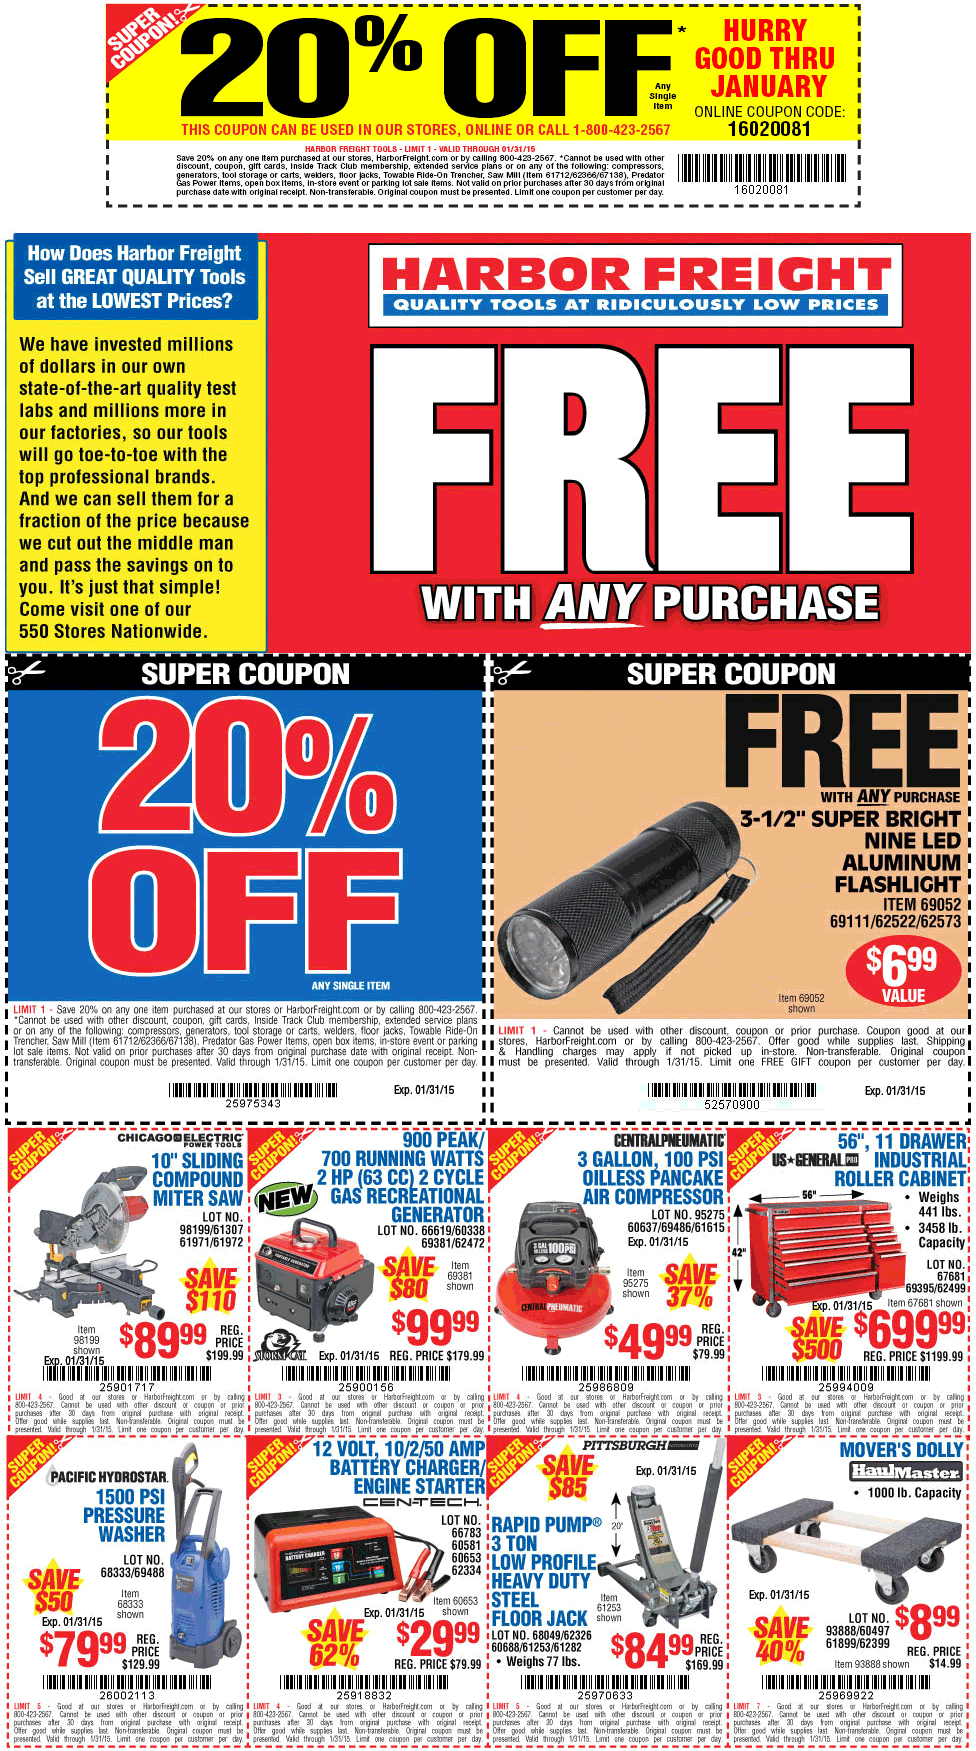 20 off harbor freight coupon horton grand theater san diego